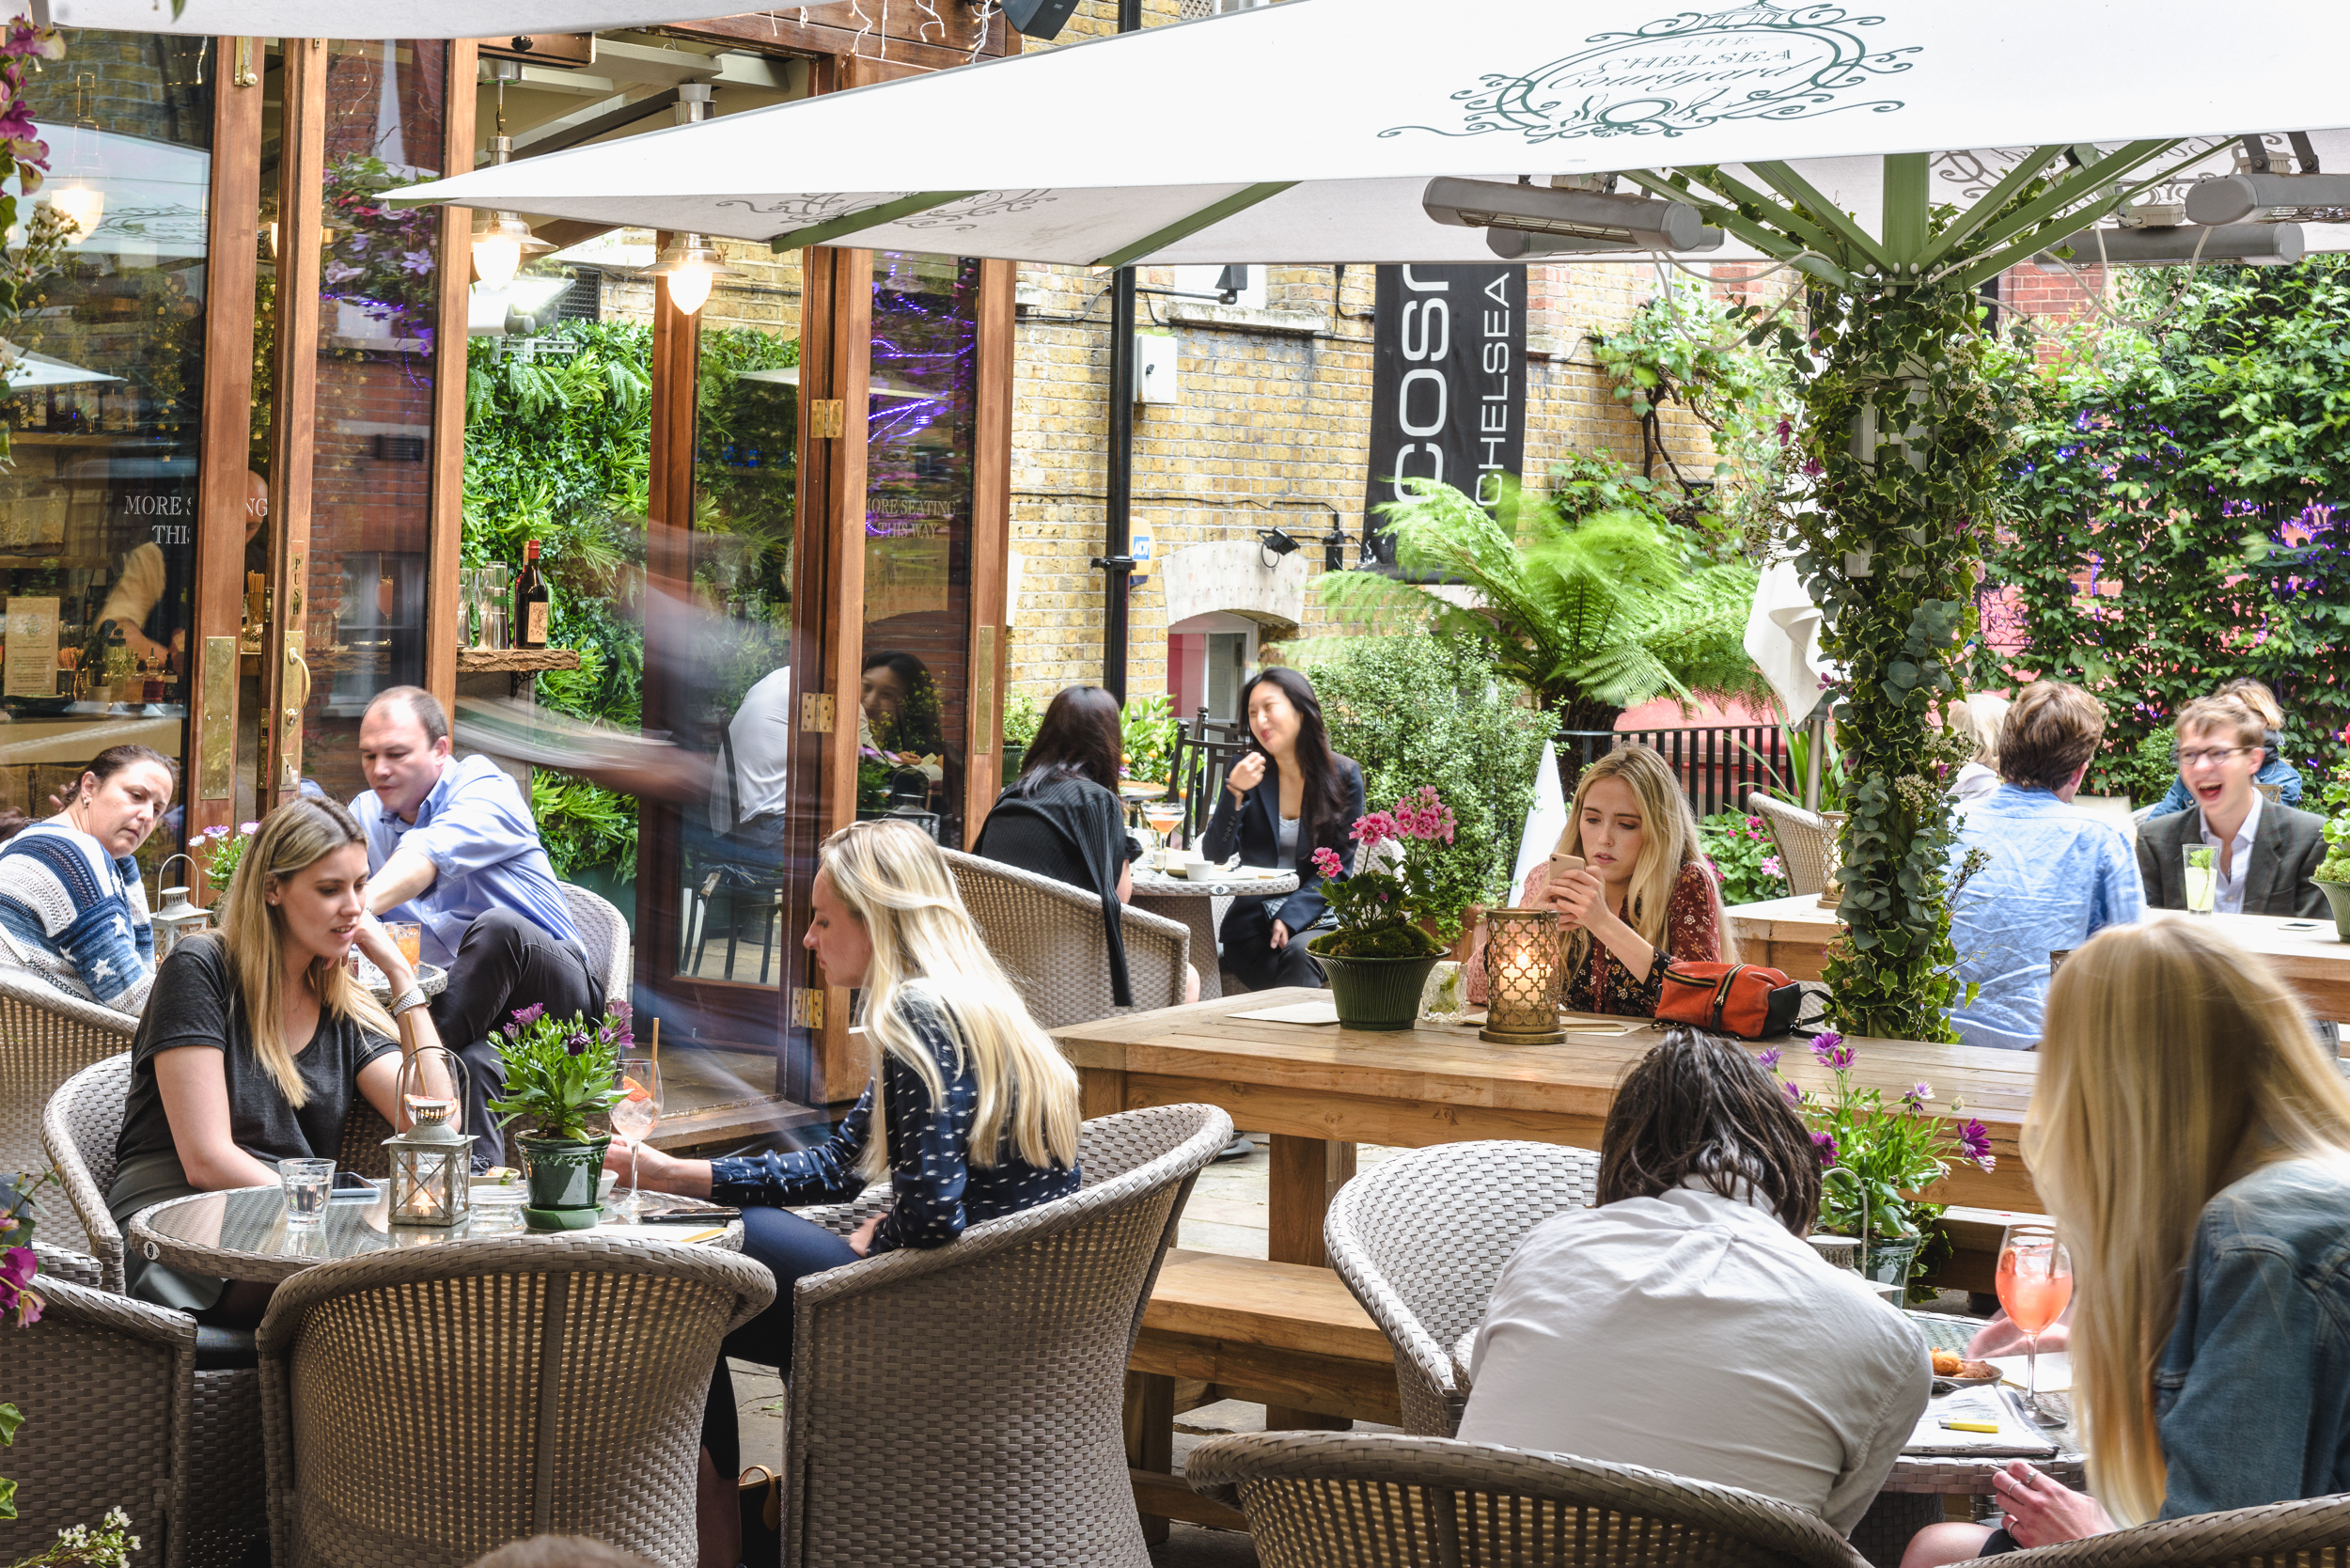 The weather is great and our outdoor courtyard awaits - Join us for some great food, drinks and atmosphere in the sunshine. We look forward to welcoming you at The Chelsea Courtyard Bistro & Bar